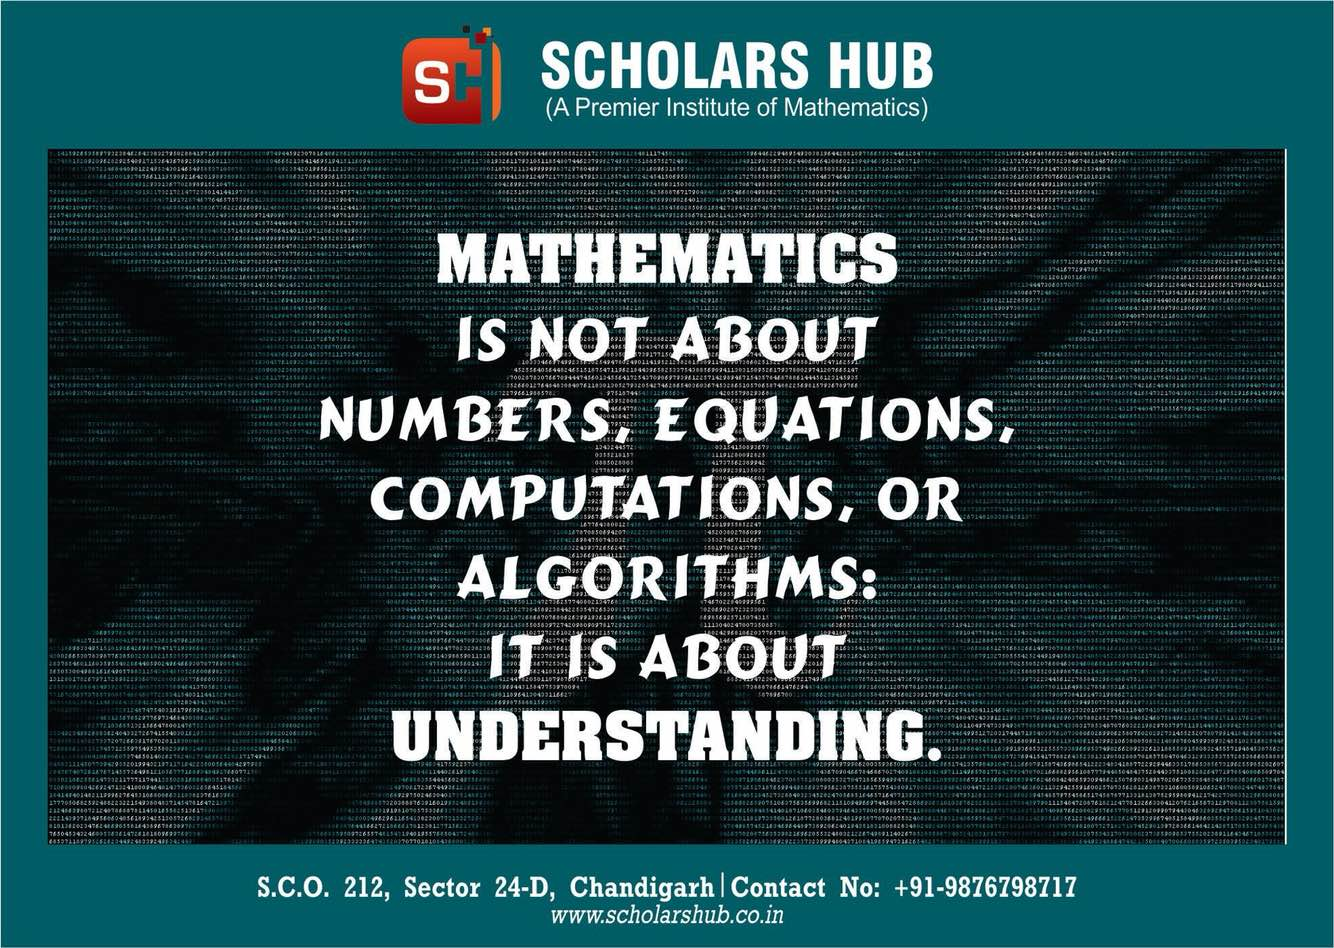 Scholars Hub is the best Maths institute in Chandigarh for Classes 10th 11th 12th BA Bsc Btech. Bsc 1st 3rd 5th Semester Maths Coaching institute. BCA Maths Coaching Bcom Maths Tuition in Chandigarh. Btech Maths M1 M2 M3 M4 classes Msc Maths Coaching Institute in Chandigarh